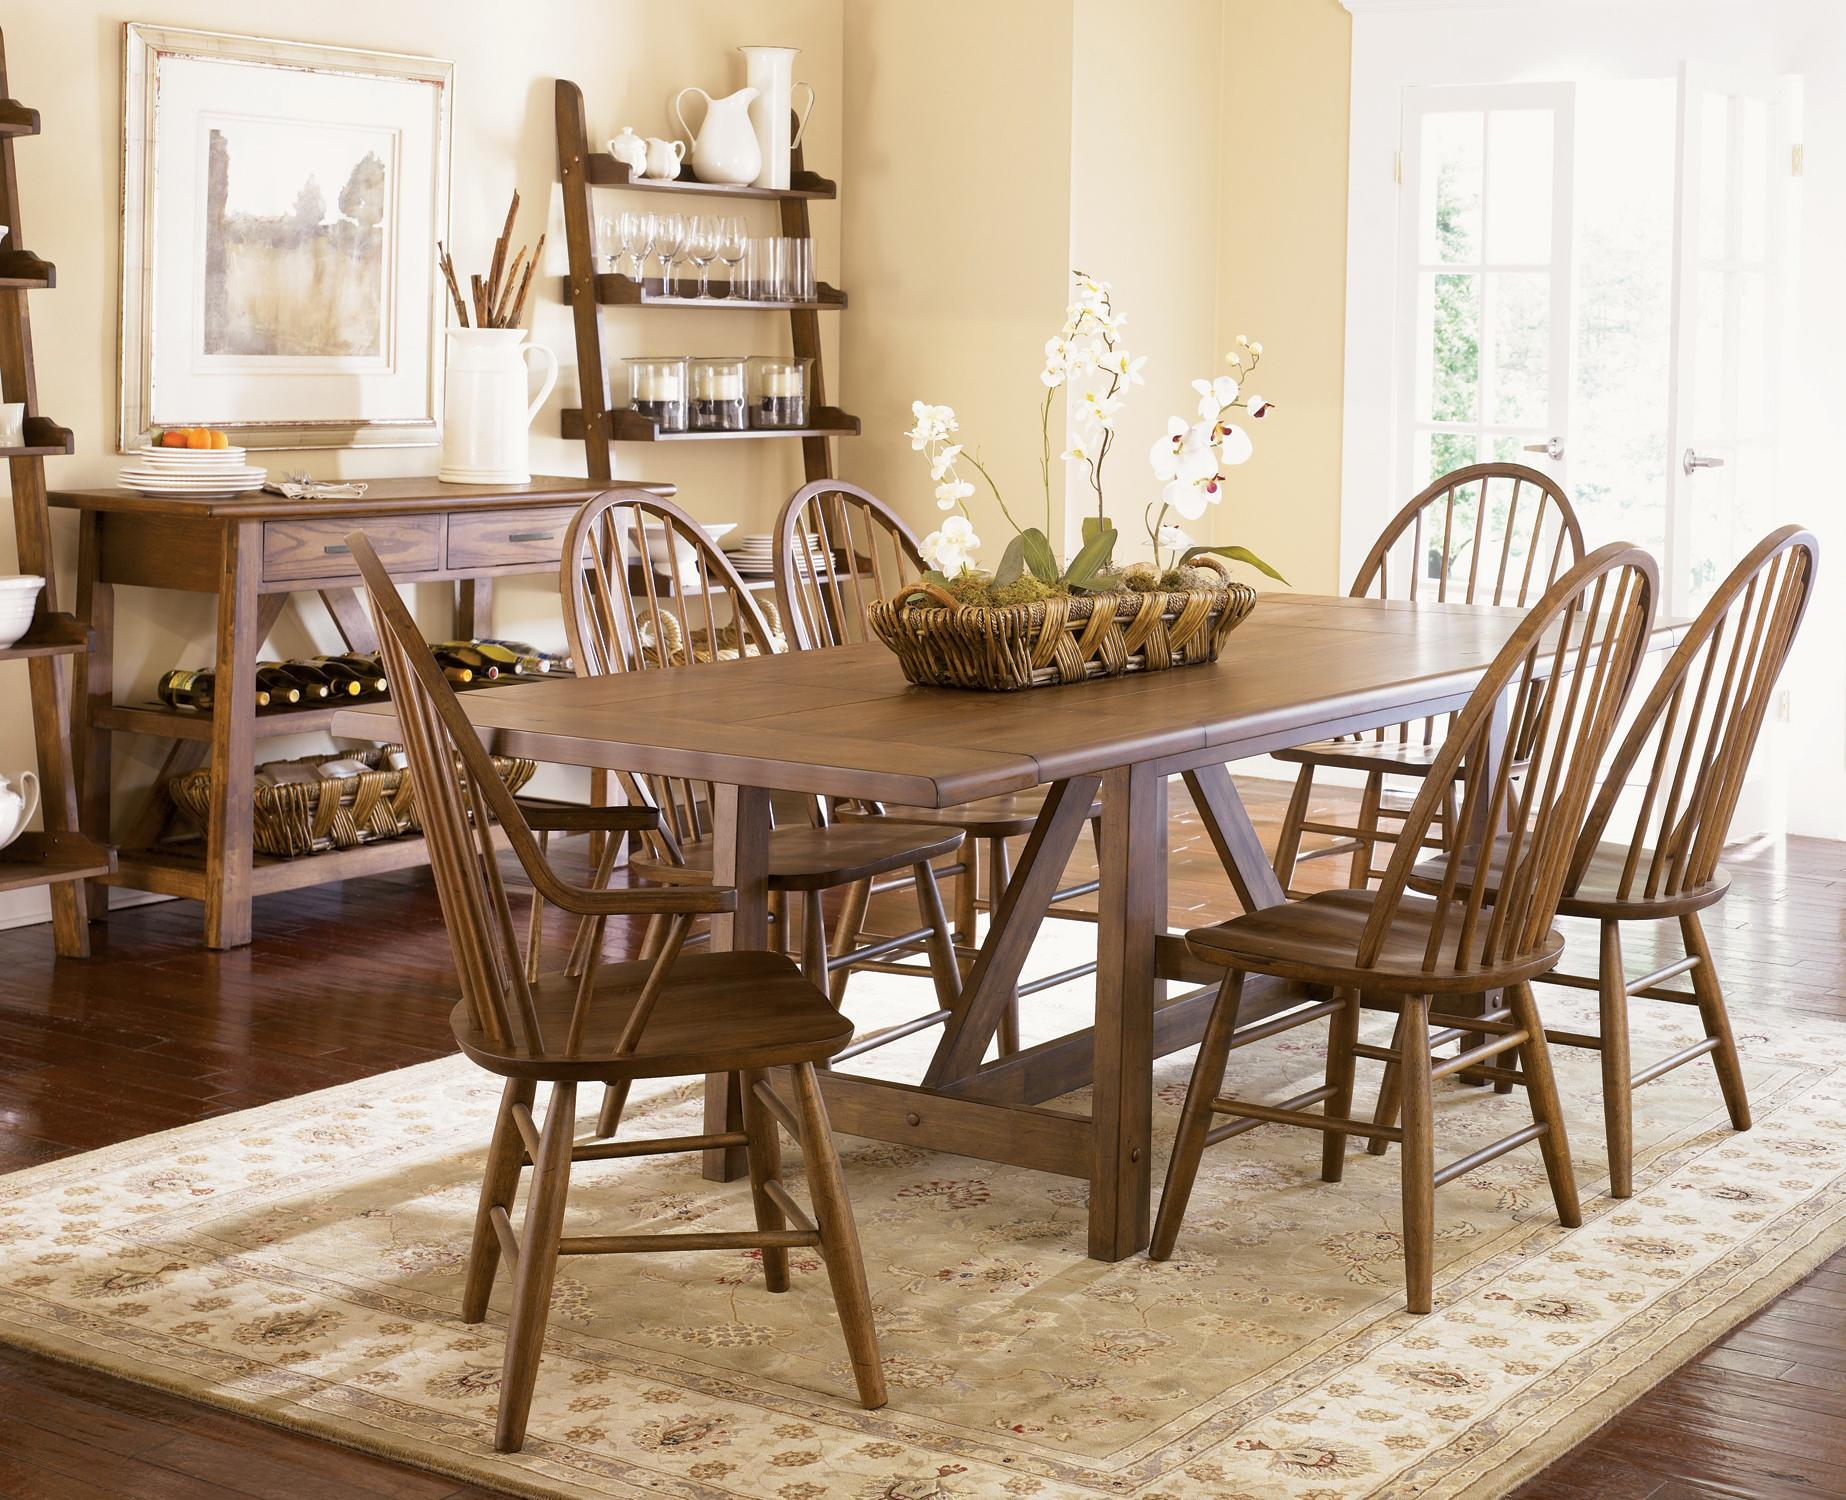 Most comfortable dining chairs for your longer dining for Comfortable dining room